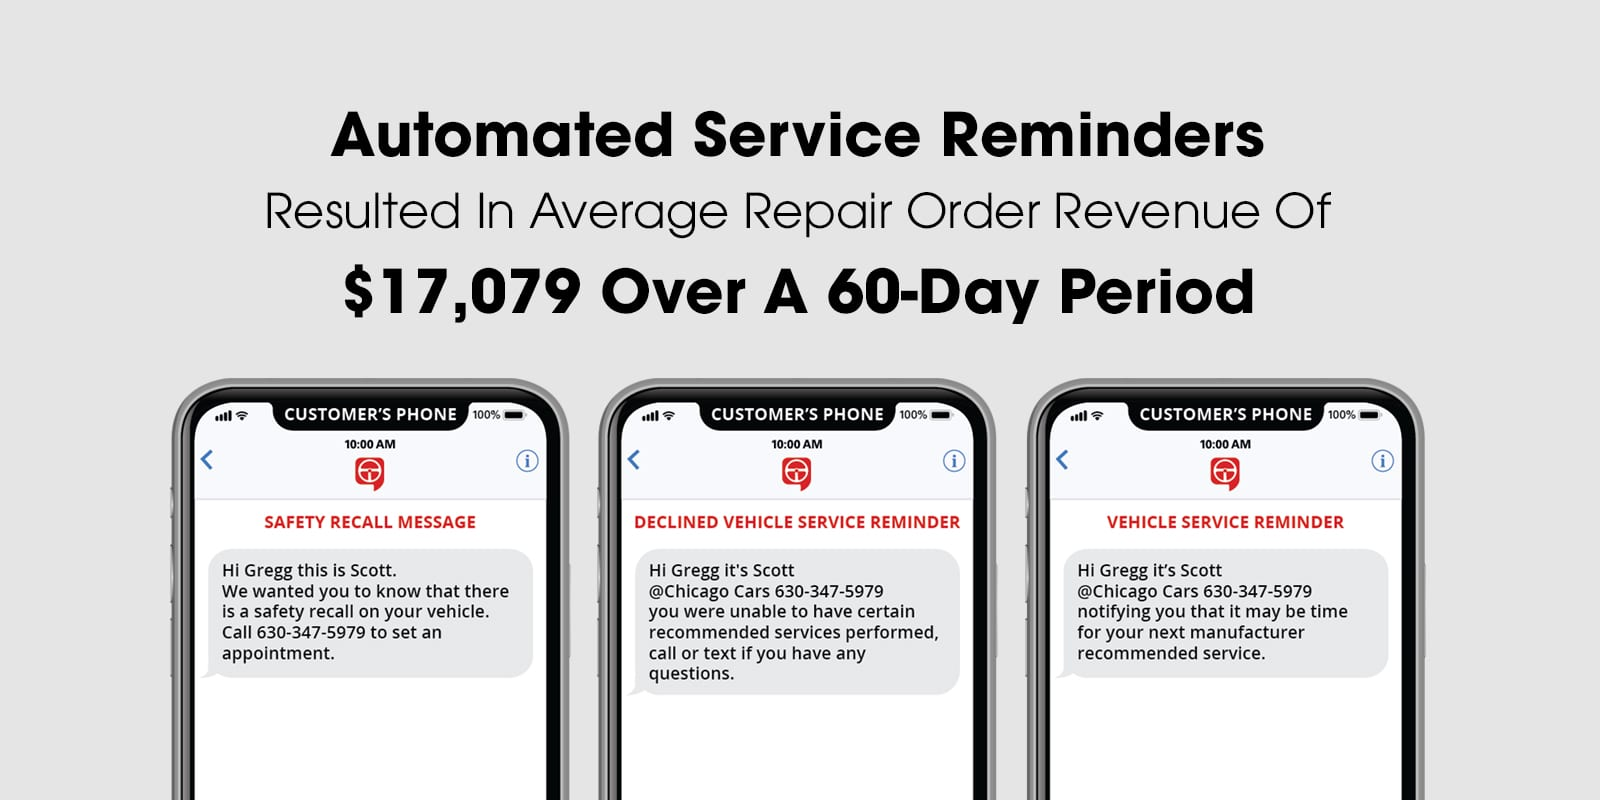 Service Reminders & Automation Resulted In $17k Of Repair Order Revenue Over 60 Days